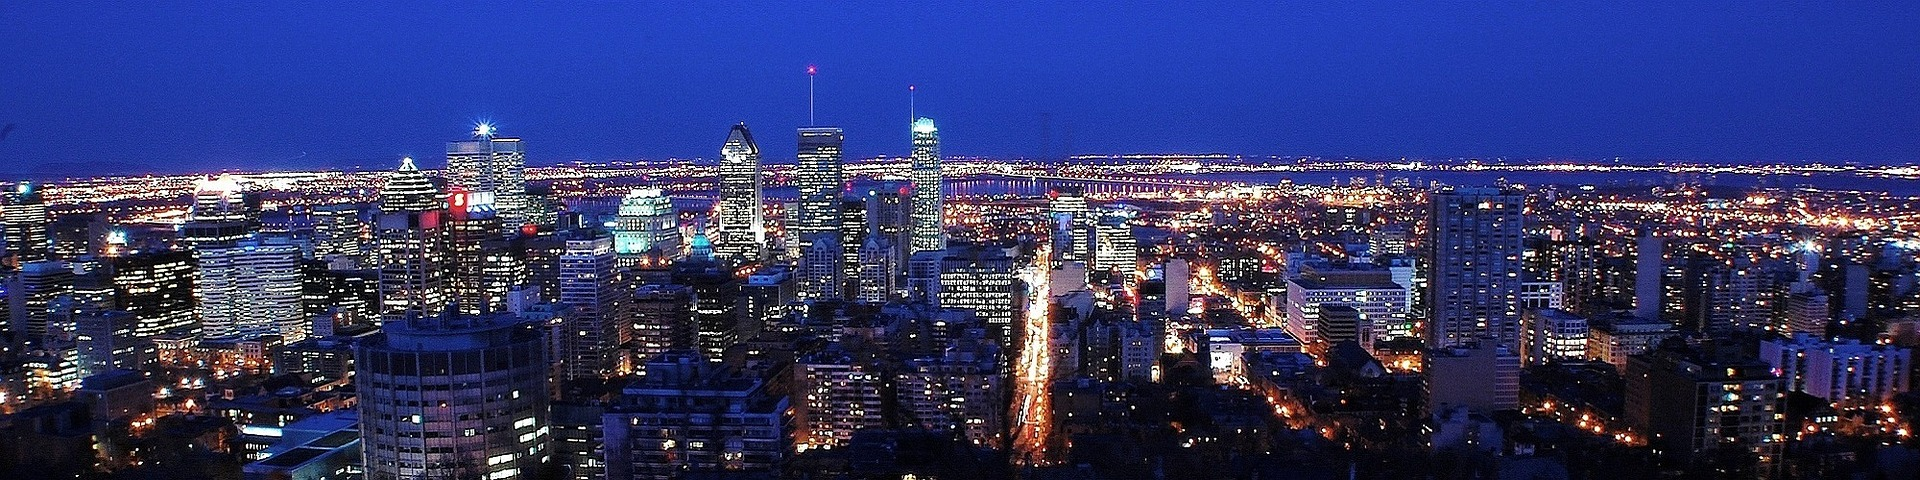 Montreal Canadá